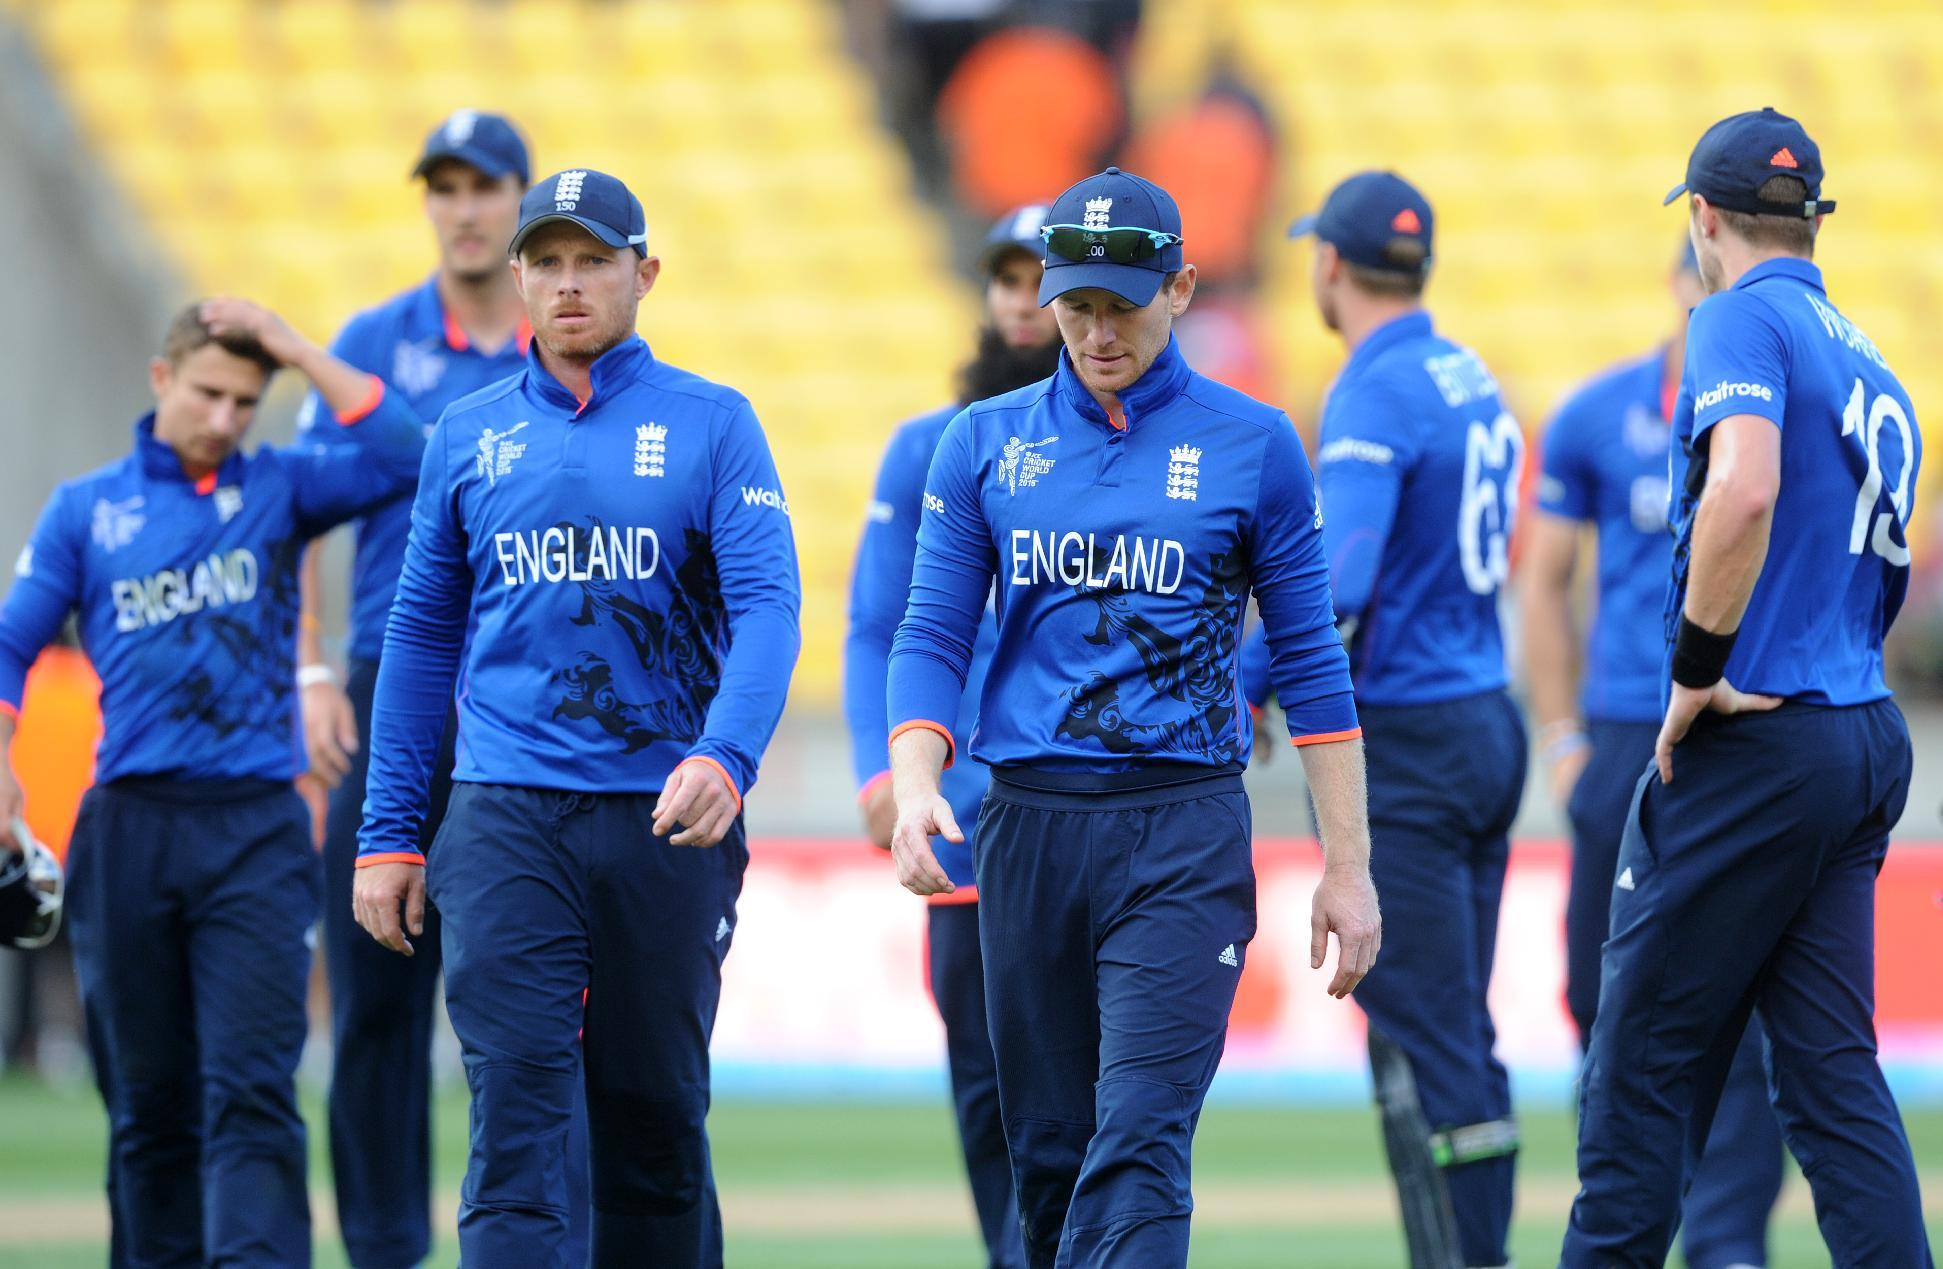 England faces Bangladesh showdown after 3rd World Cup loss